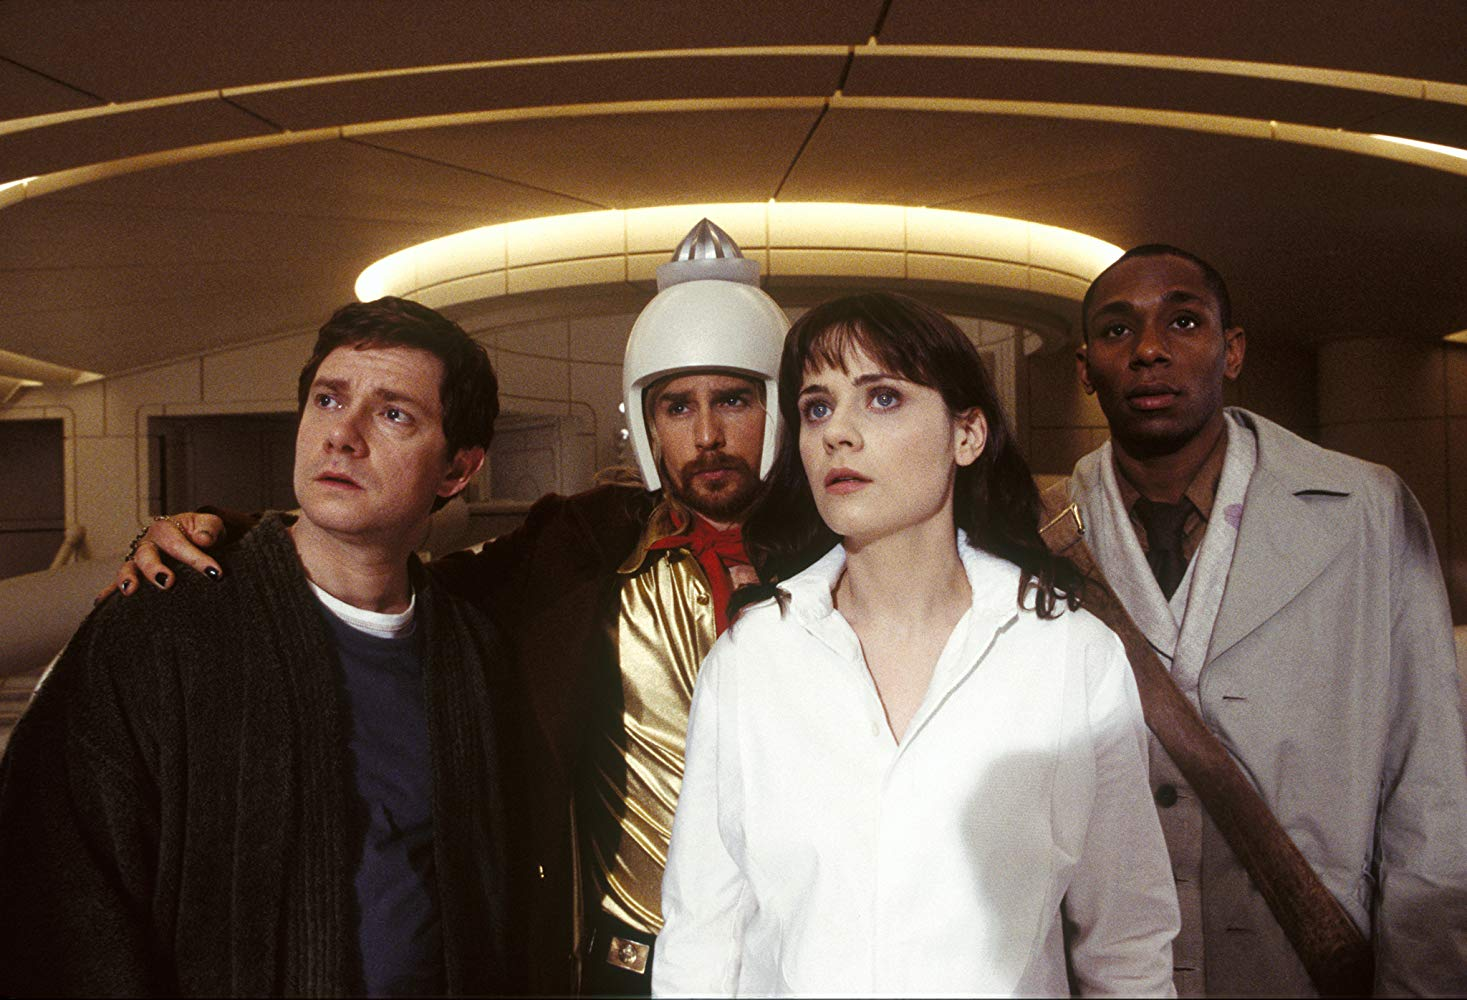 Arthur Dent (Martin Freeman), Zaphod Beeblebrox (Sam Rockwell), Trillian (Zooey Deschanel) and Ford Prefect (Mos Def) in The Hitch Hiker's Guide to the Galaxy (2005)